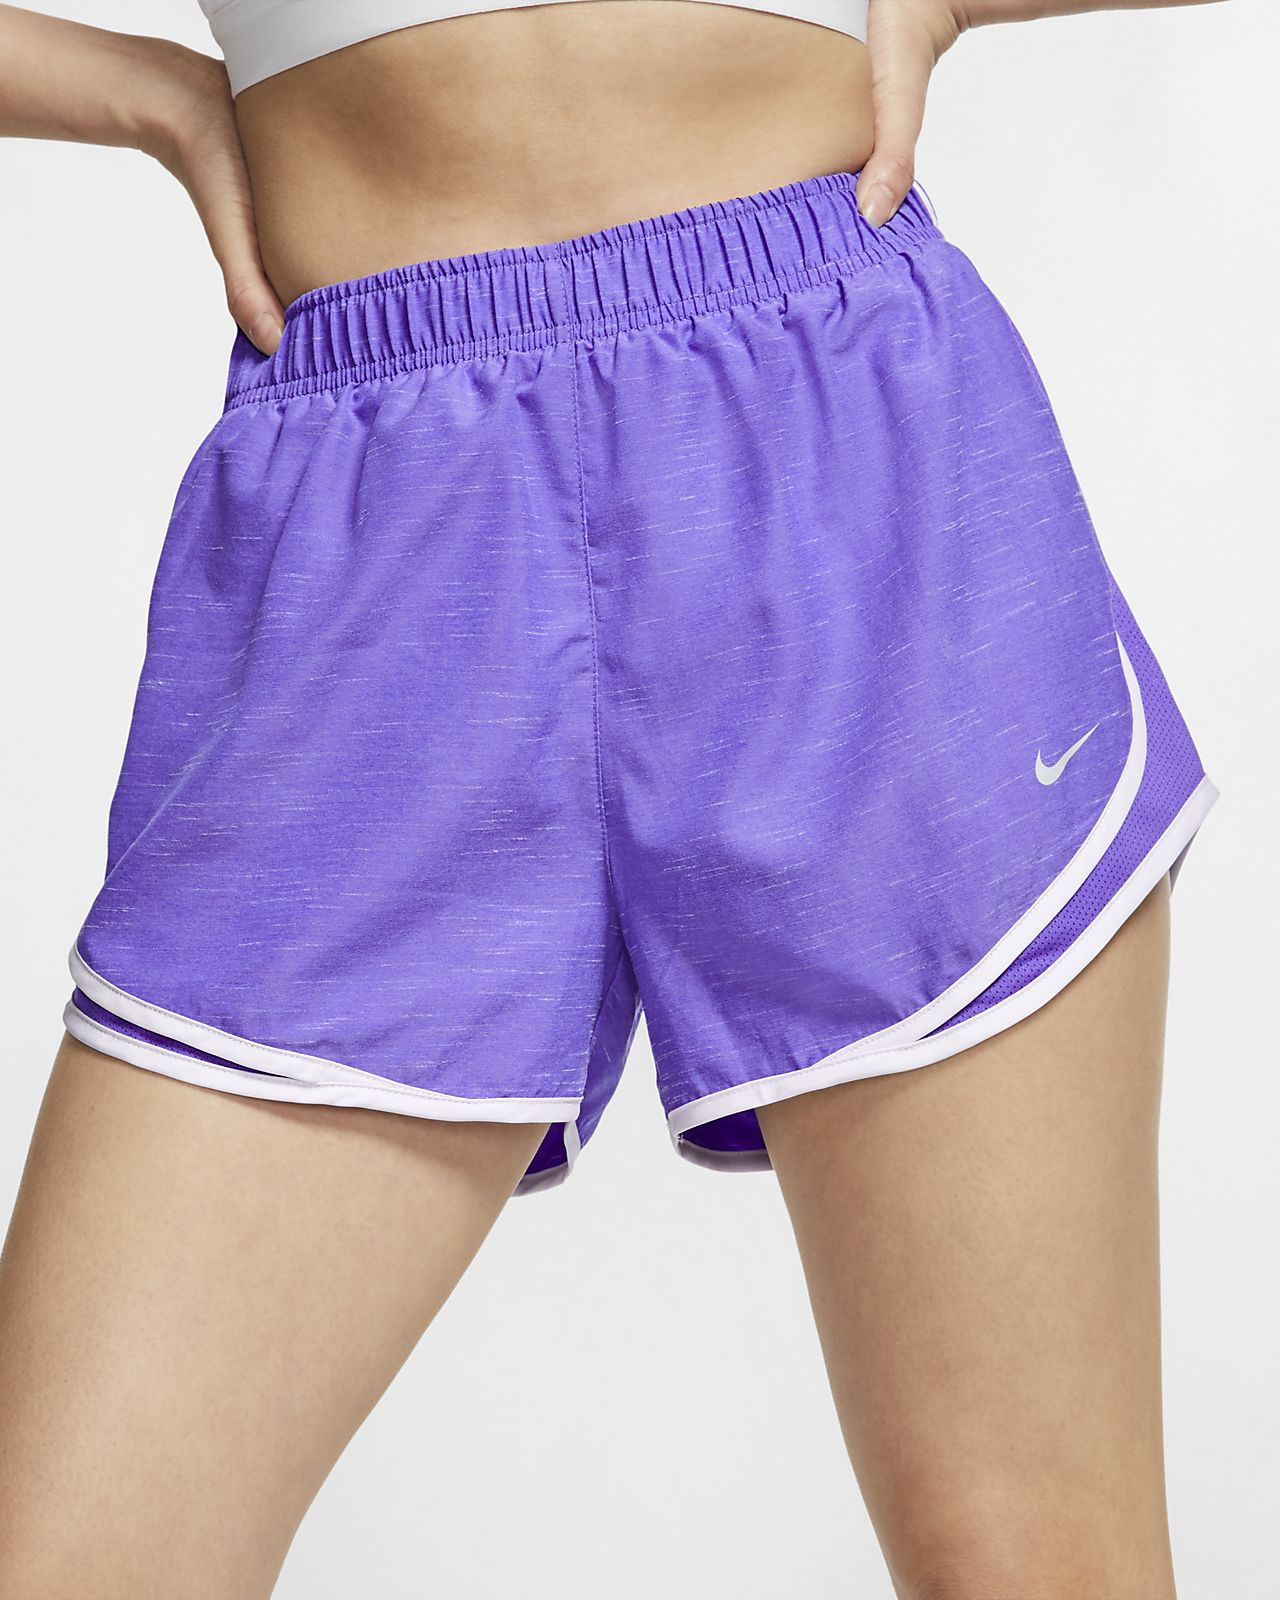 Best Men's Running Shorts of 2019: My Favorite Come From a